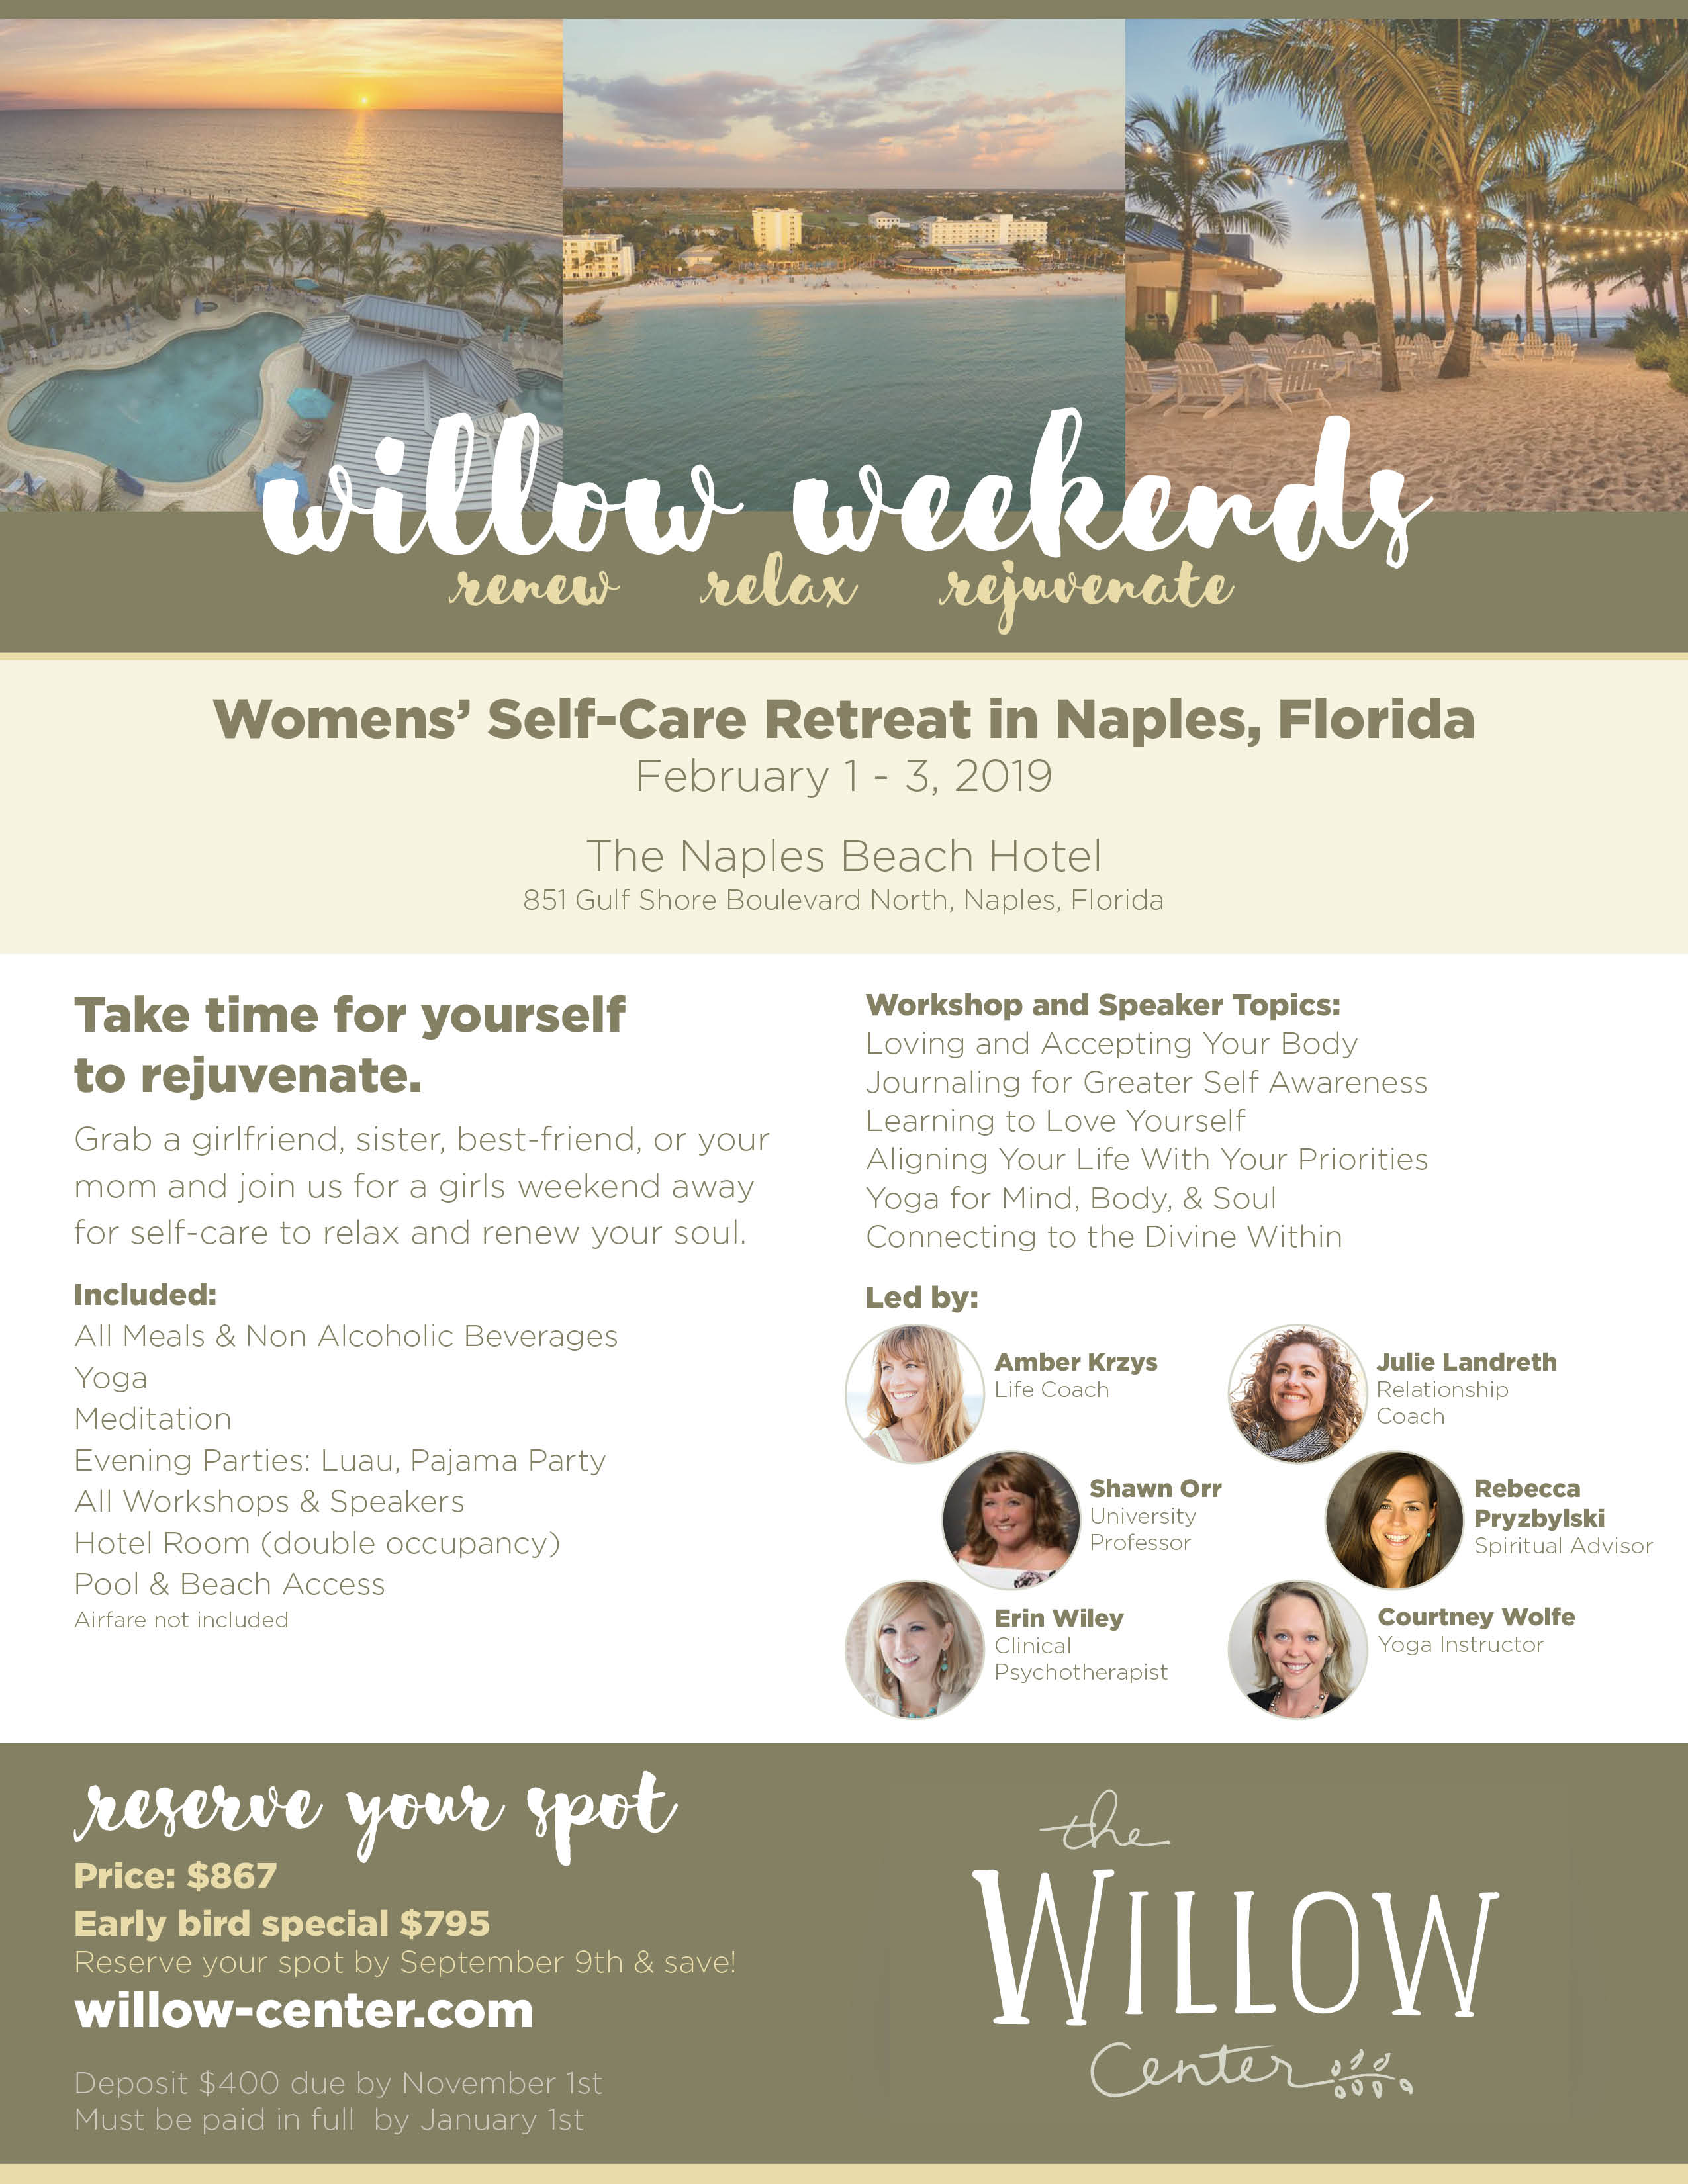 2019 Willow Weekend Flyer